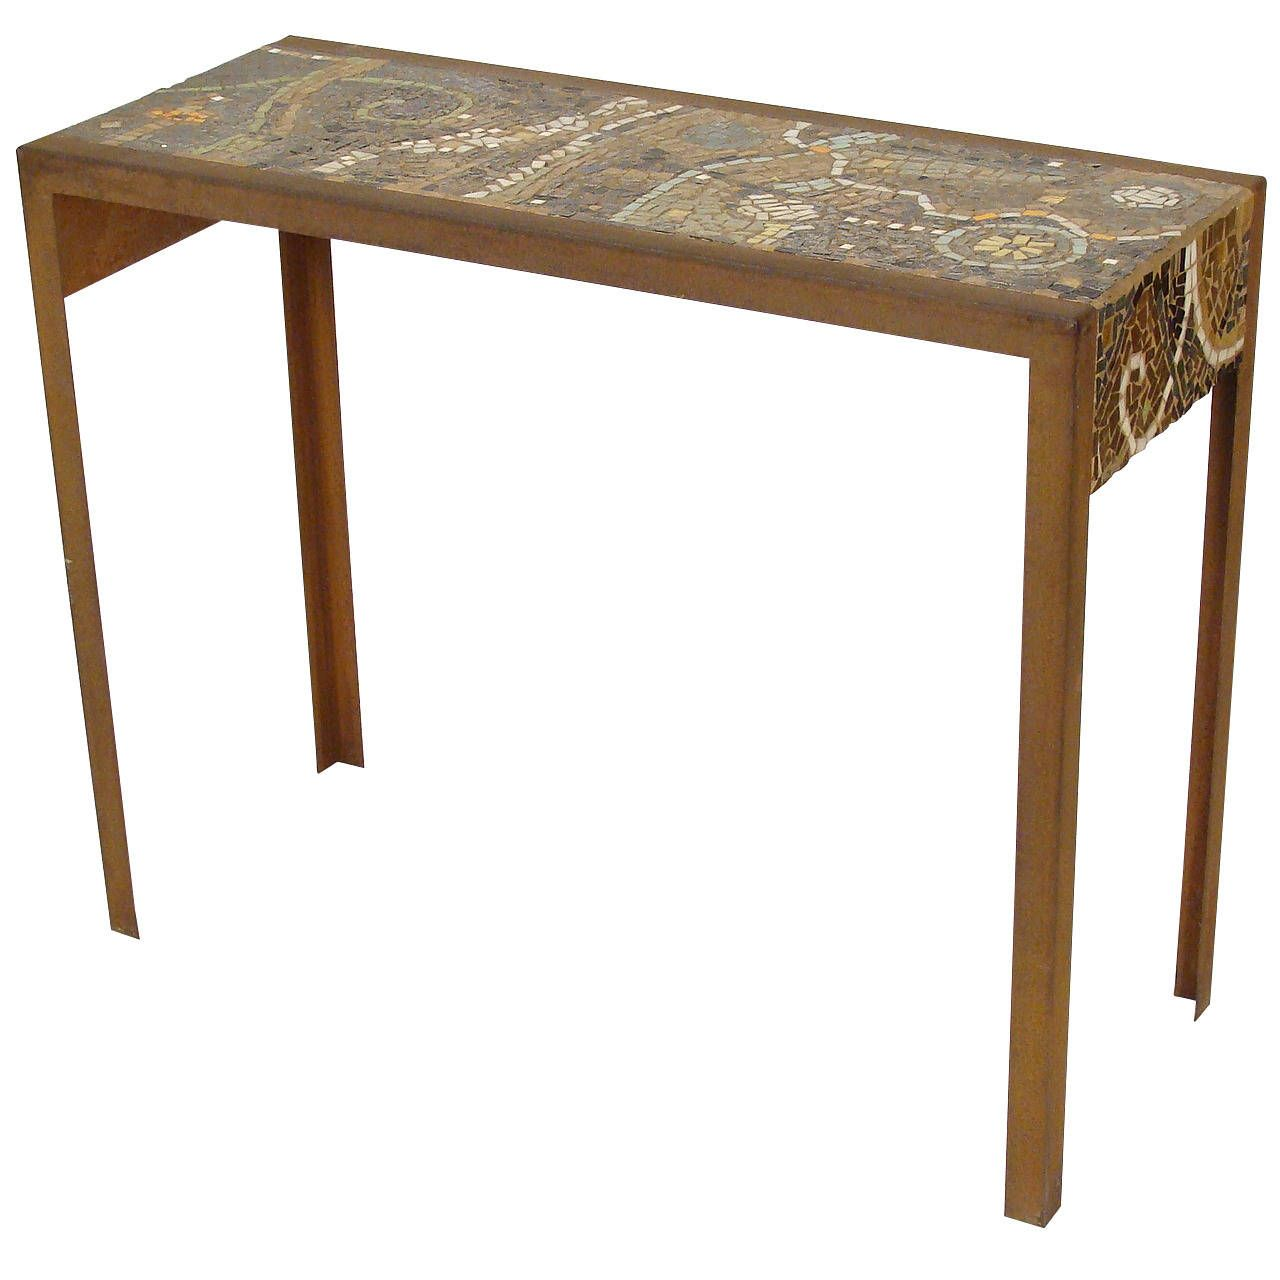 Captivating Mosaic Tile Top Console Table